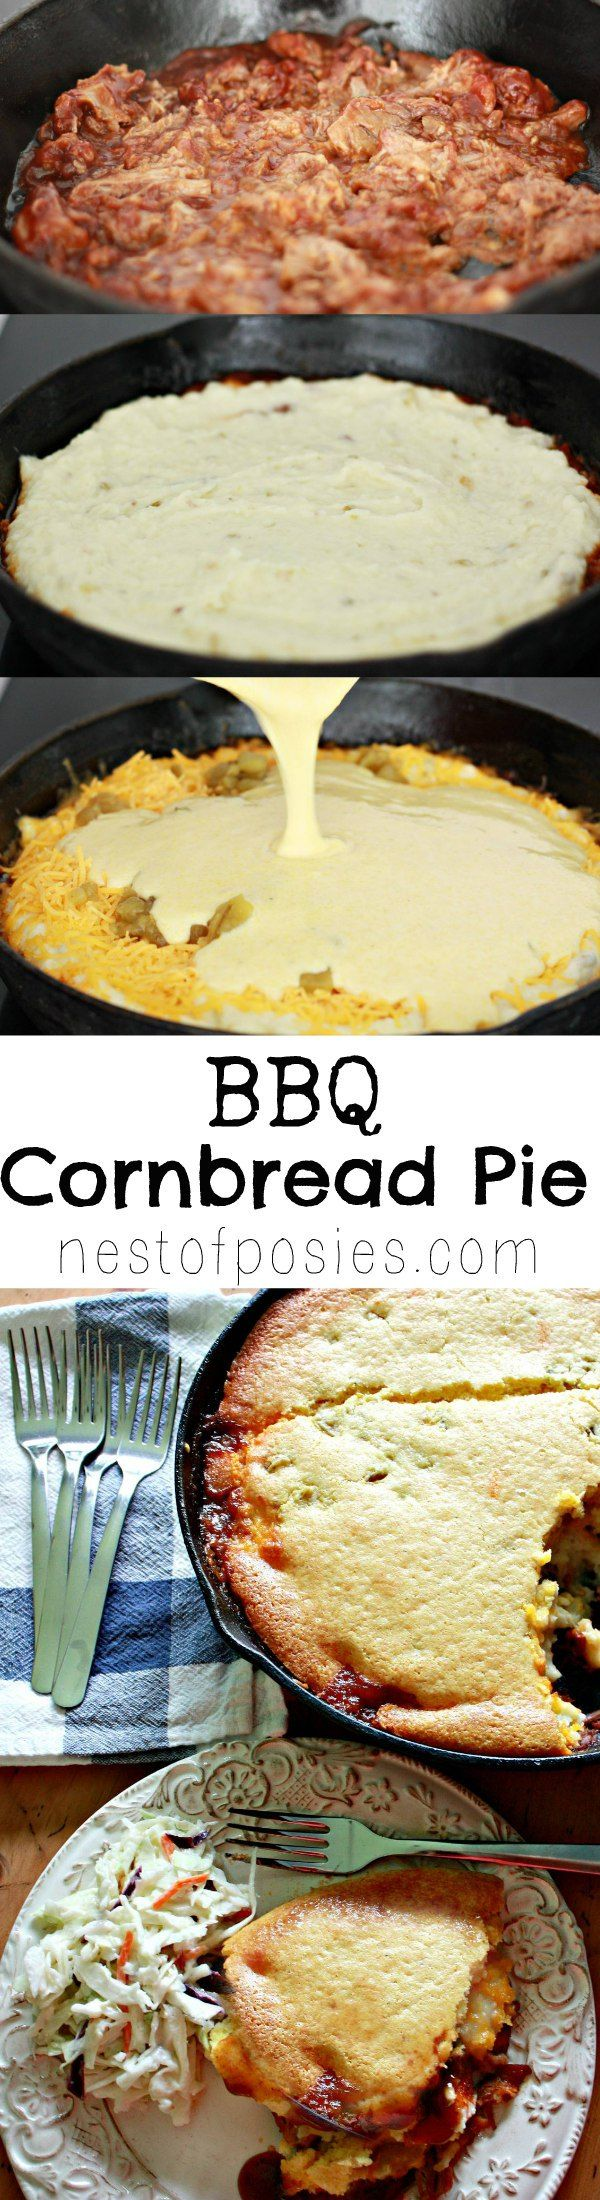 BBQ Cornbread Pie. Hickory Smoked BBQ layered with green chili mashed potatoes, cheese and cornbread. So delicious.